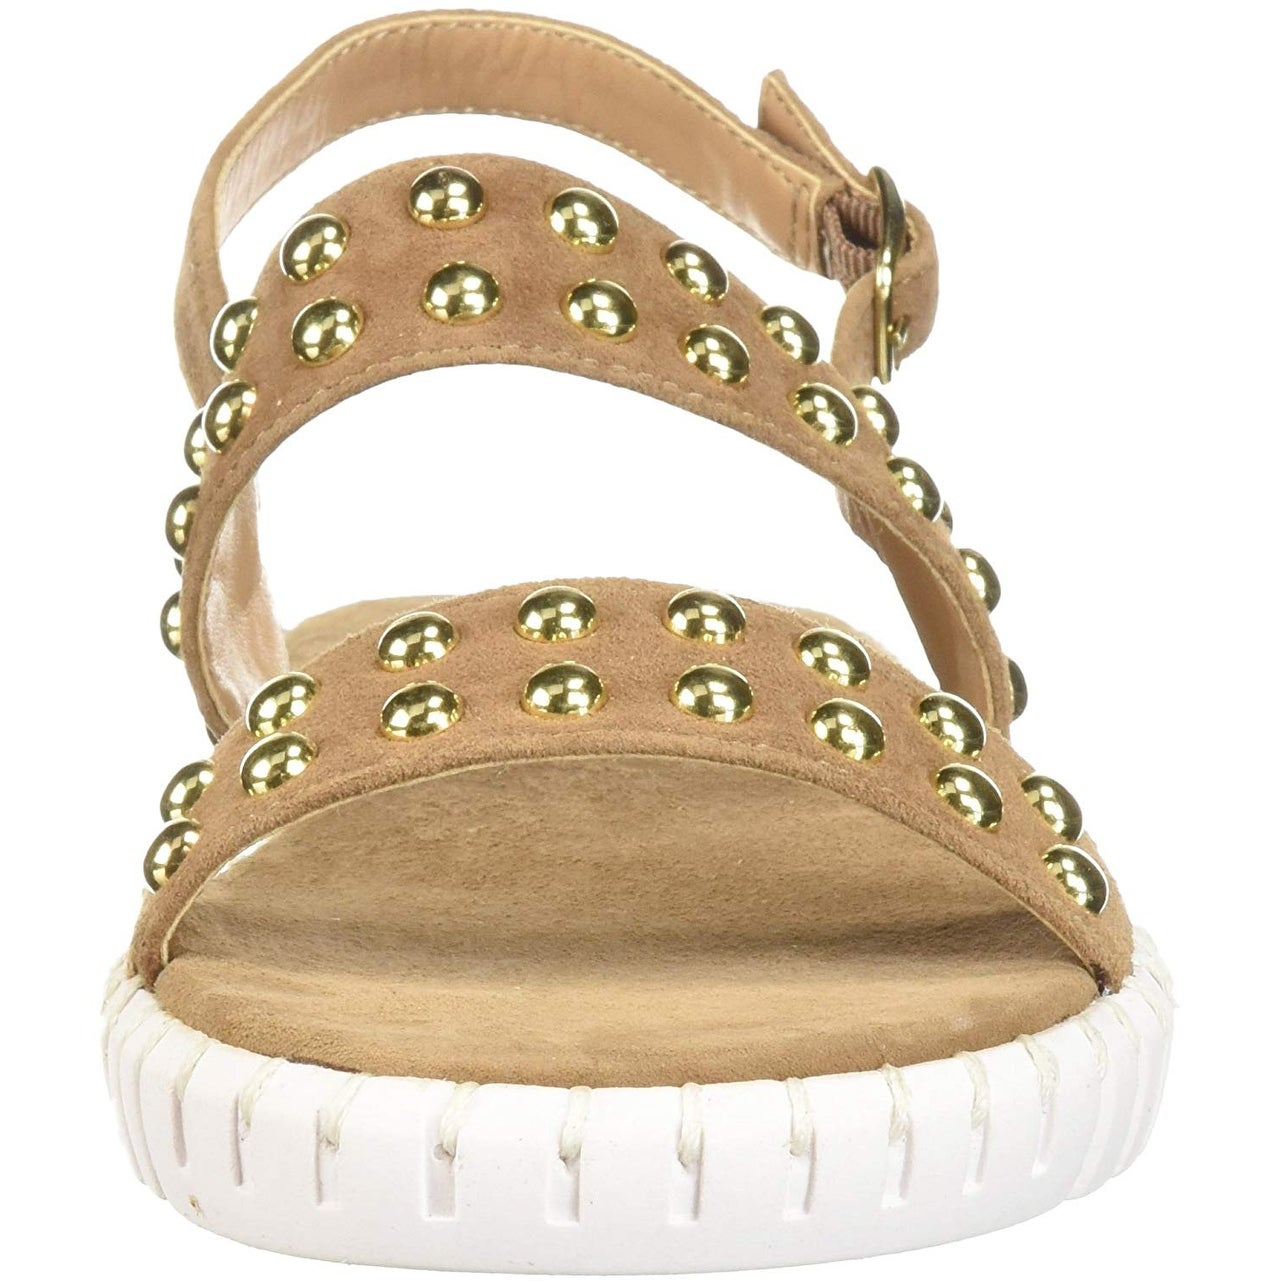 51ac9dfbbf1 Shop STEVEN by Steve Madden Womens shams Open Toe Casual Gladiator Sandals  - On Sale - Free Shipping On Orders Over  45 - Overstock.com - 22810092